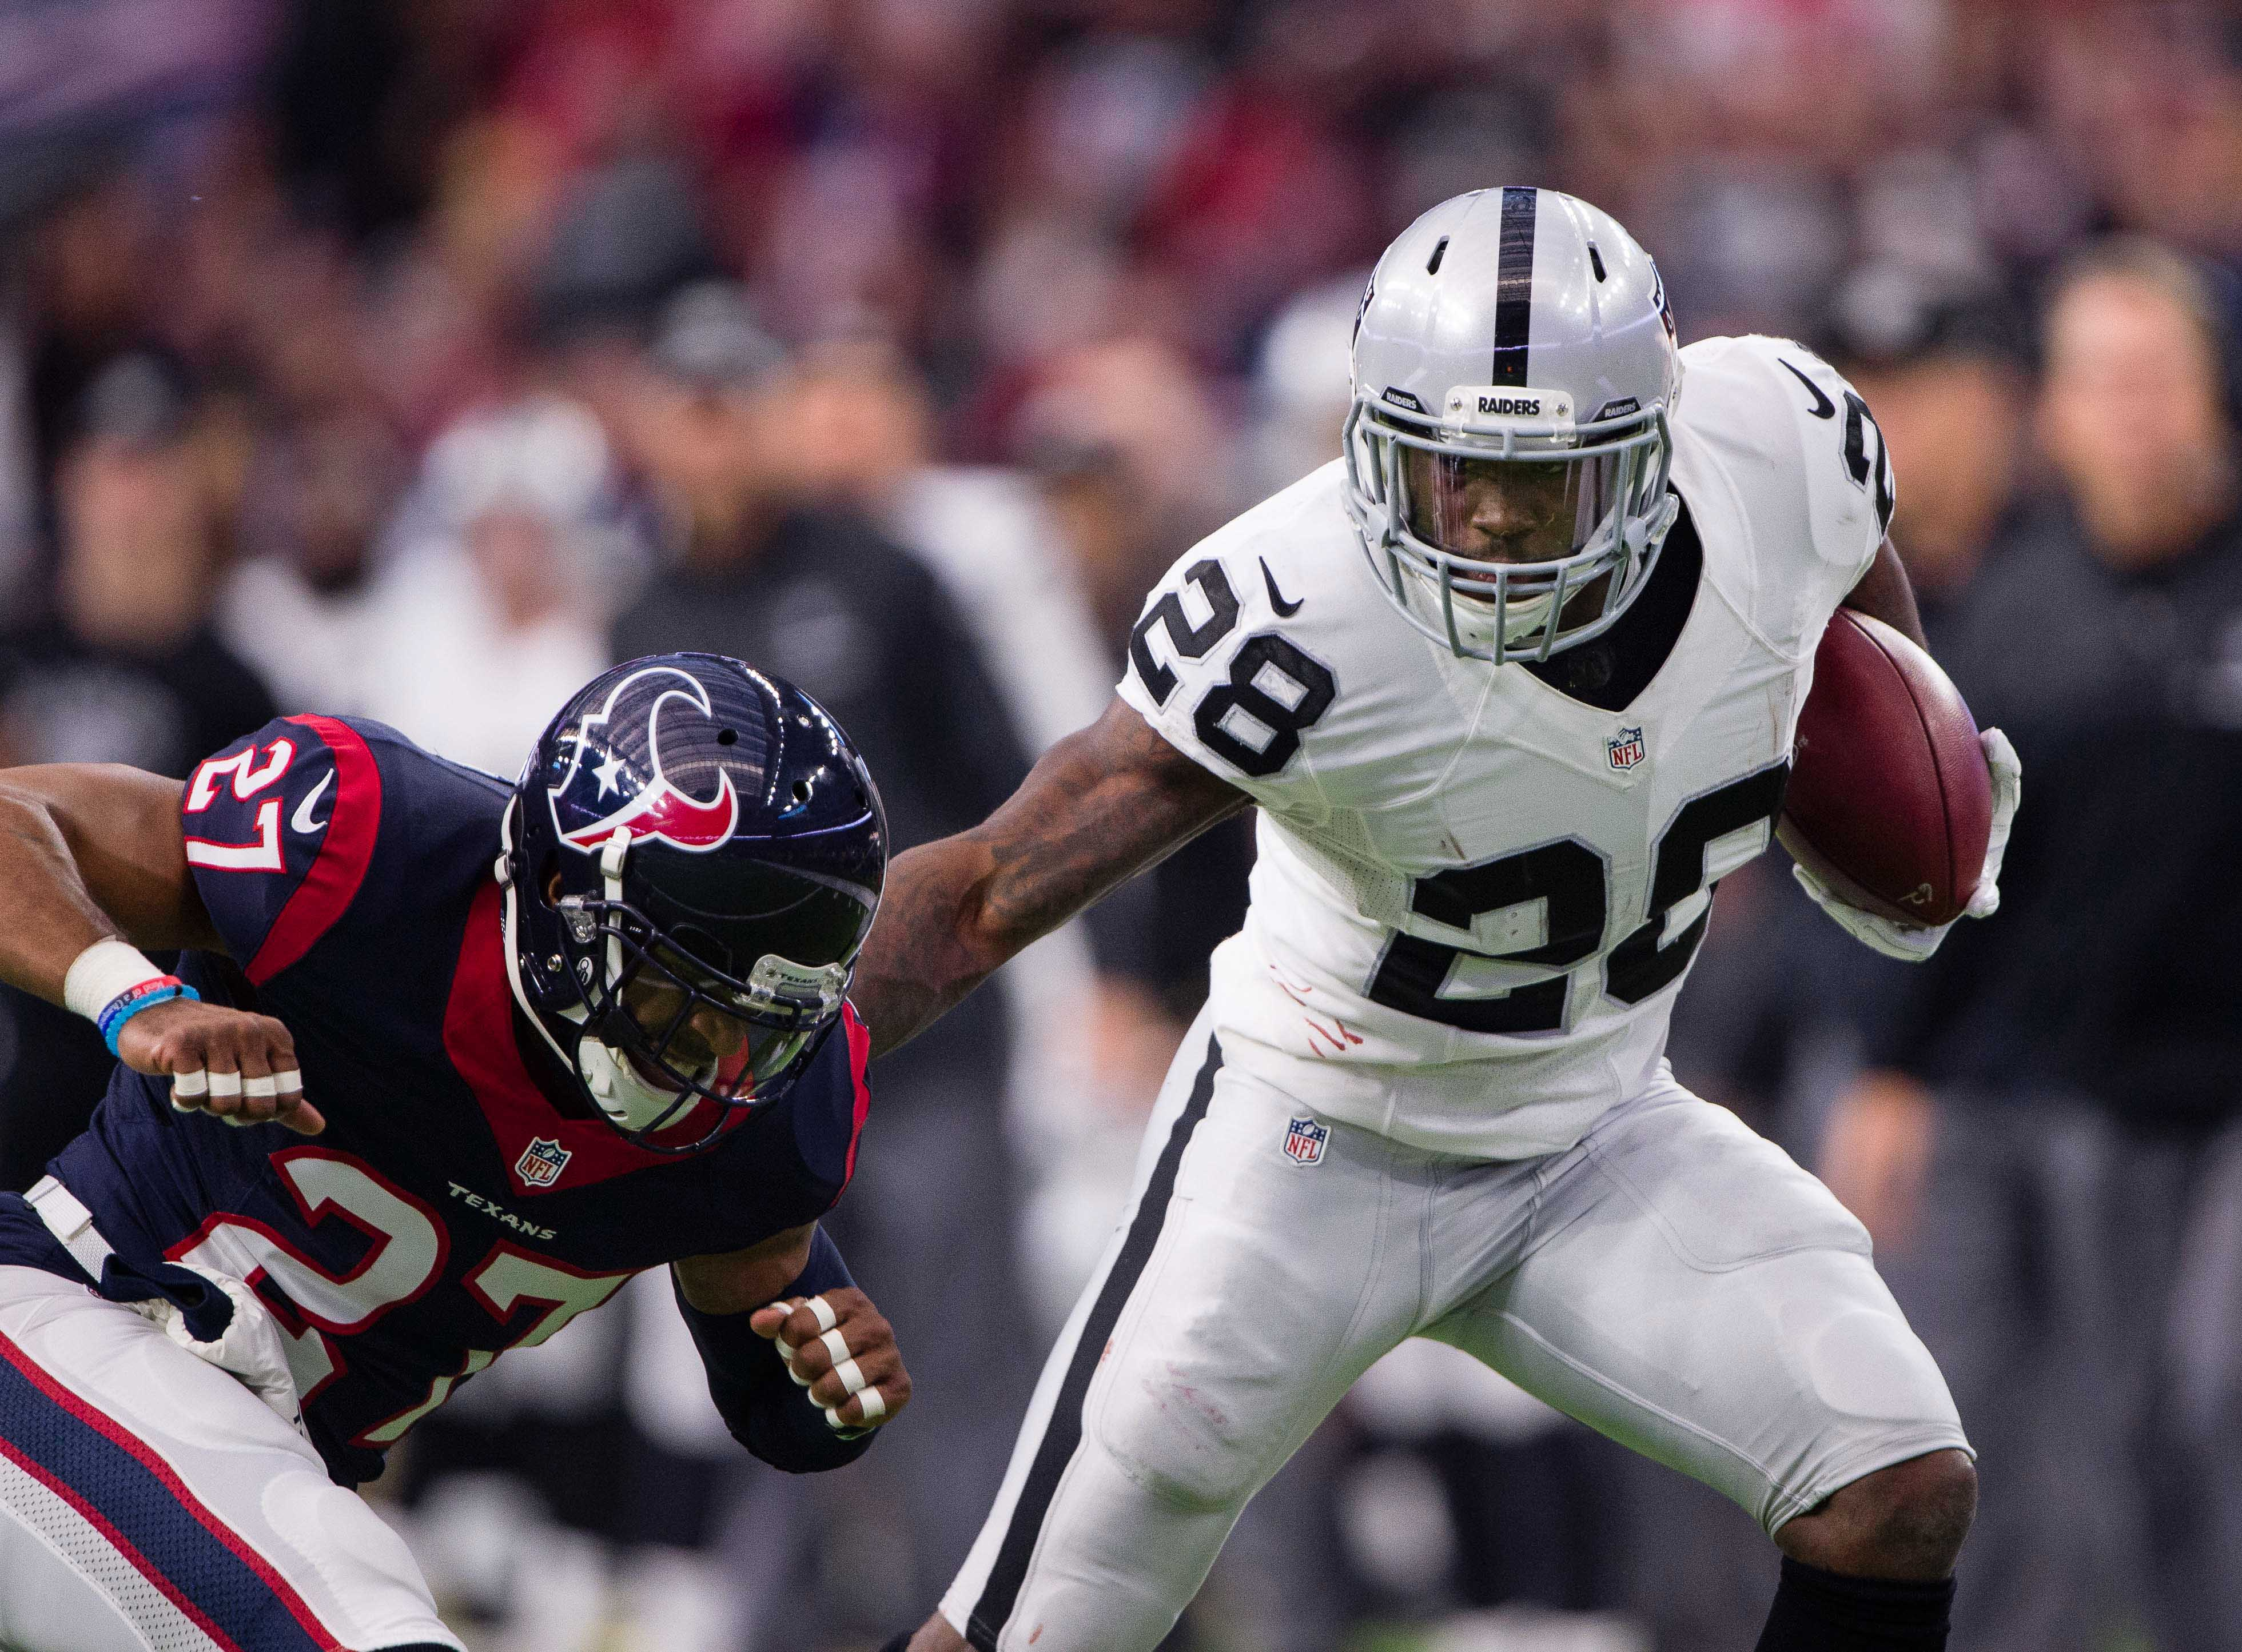 9805207-nfl-afc-wild-card-oakland-raiders-at-houston-texans